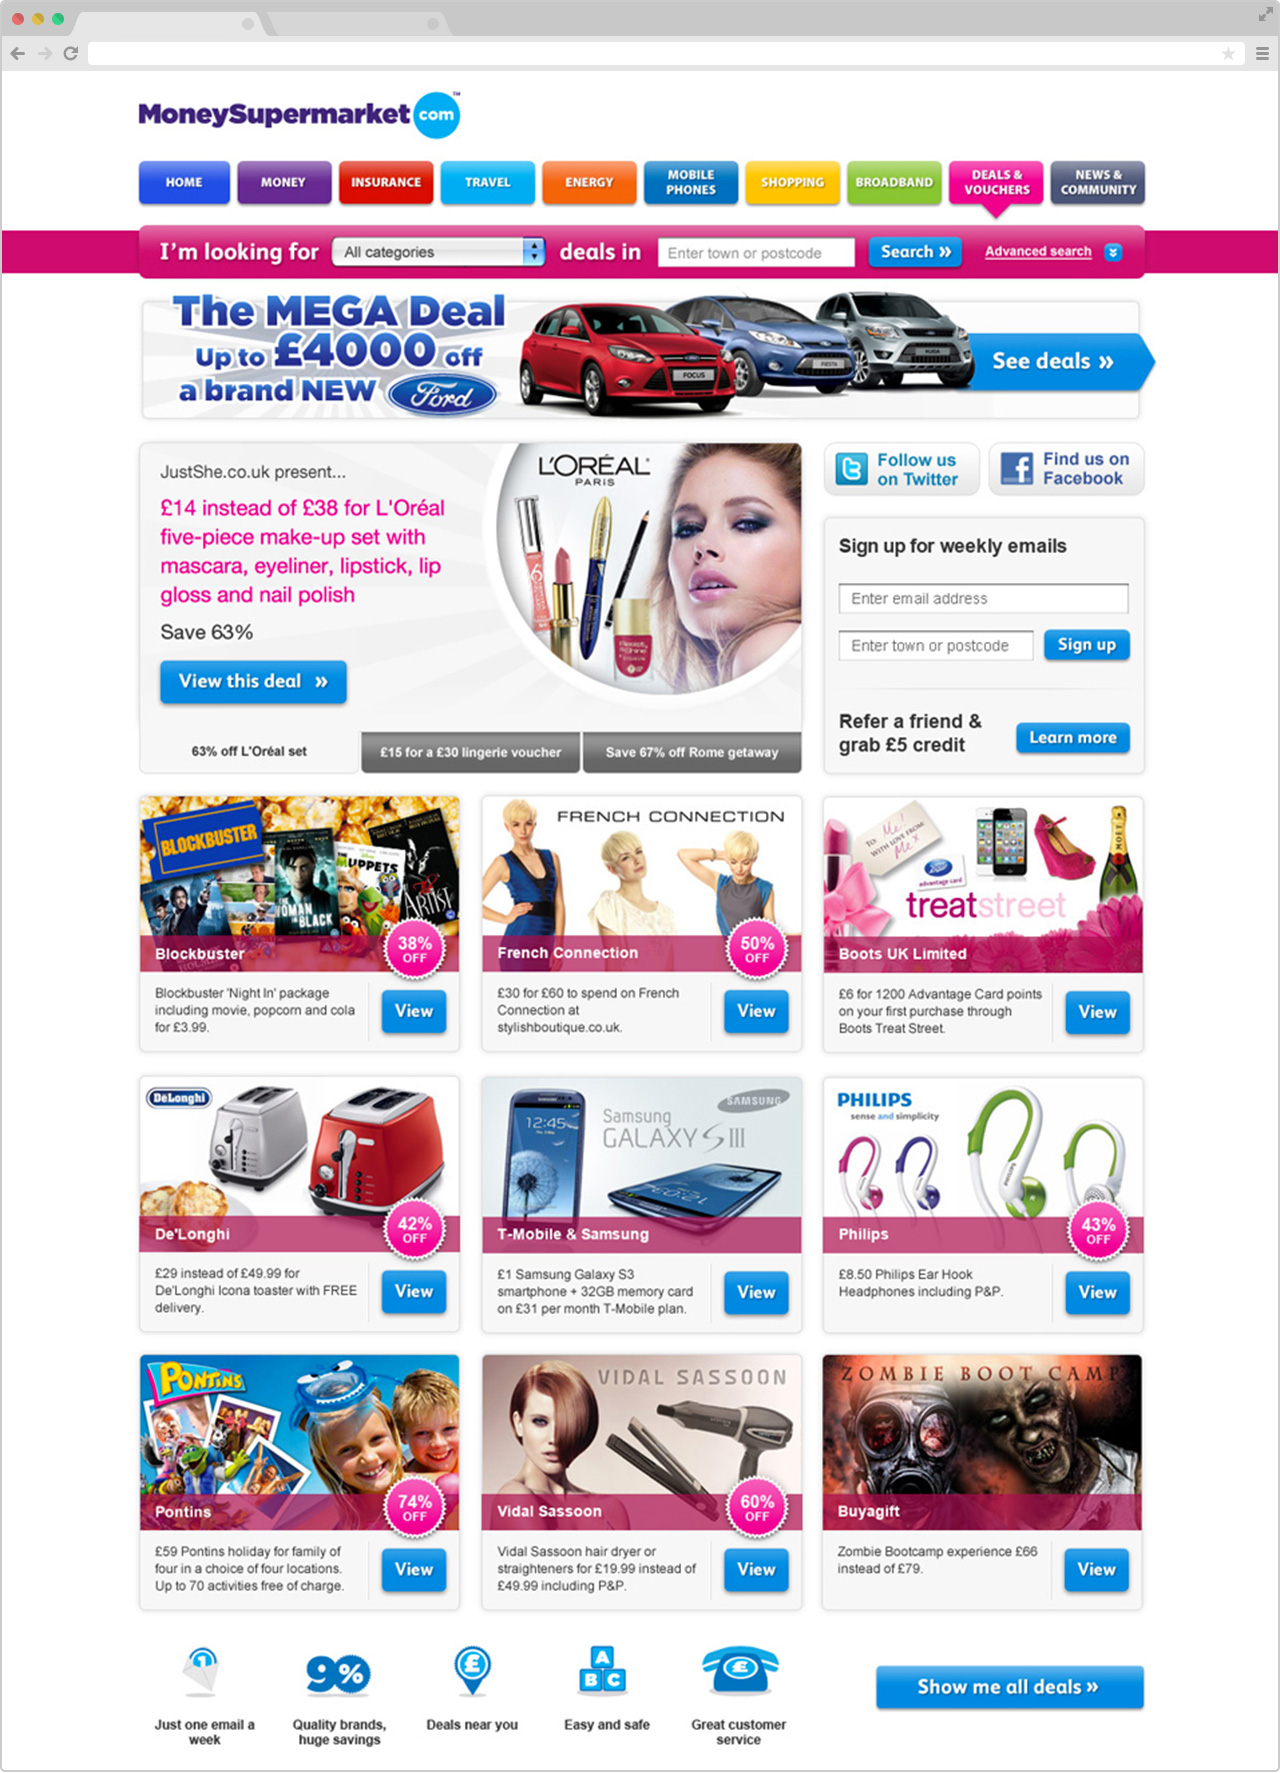 MoneySupermarket Deals Homepage Design, 2013